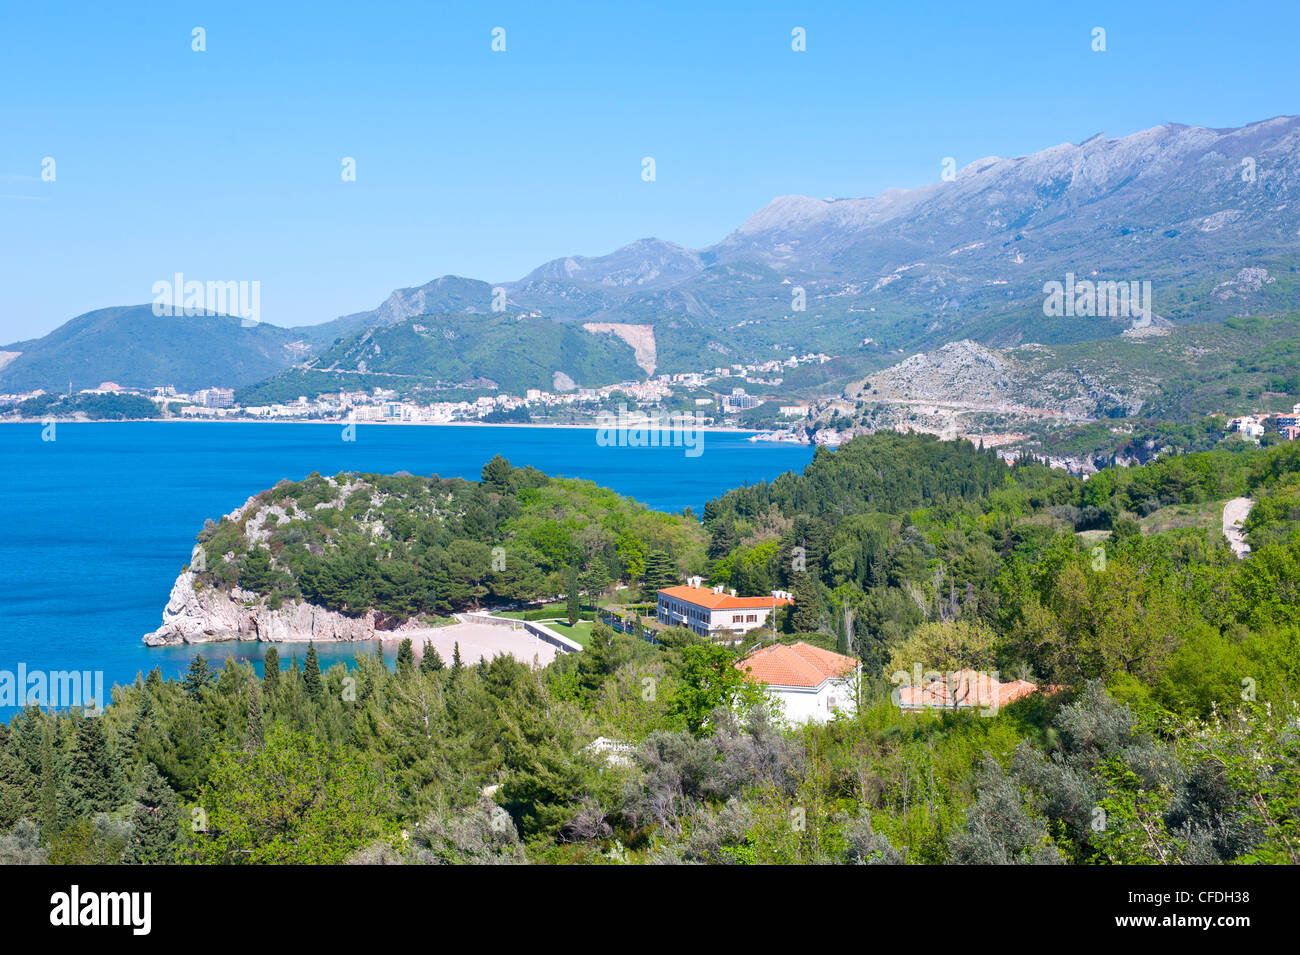 View of the coast from Sveti Stefan, seaside resort in western Montenegro, Europe - Stock Image